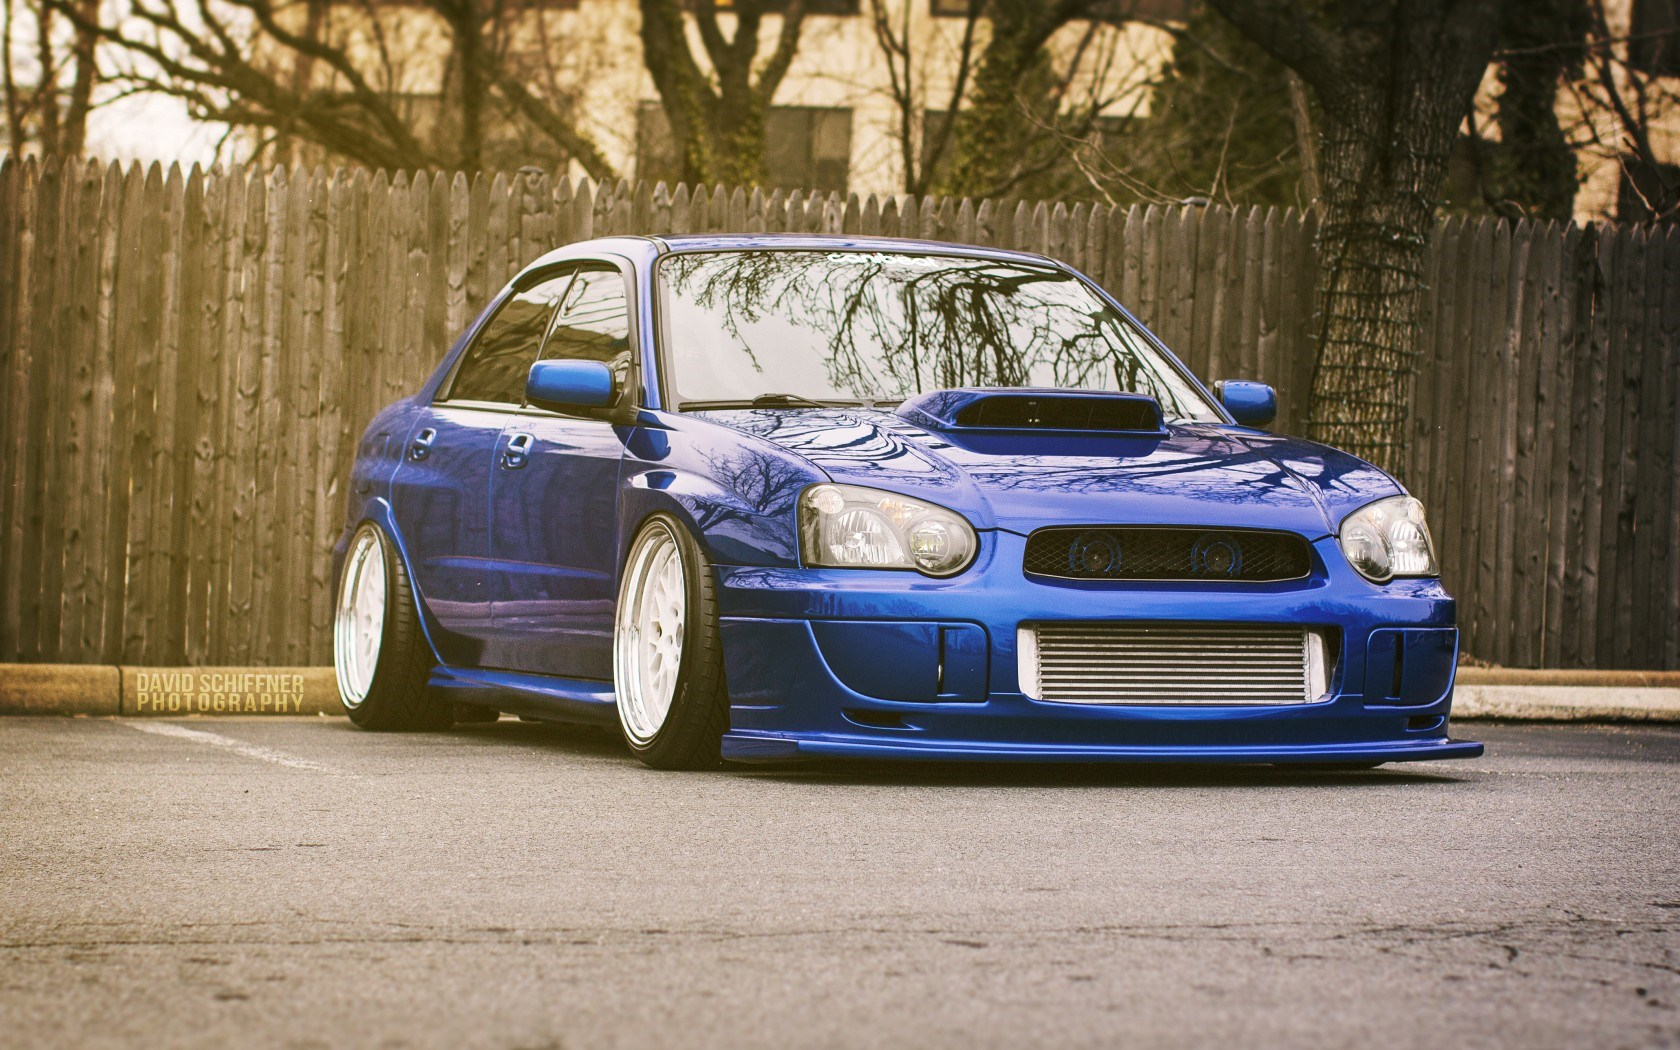 Hd wallpaper ken block - Subaru Impreza Wrx Sti Blue Rear Car Wallpaper 1680x1050